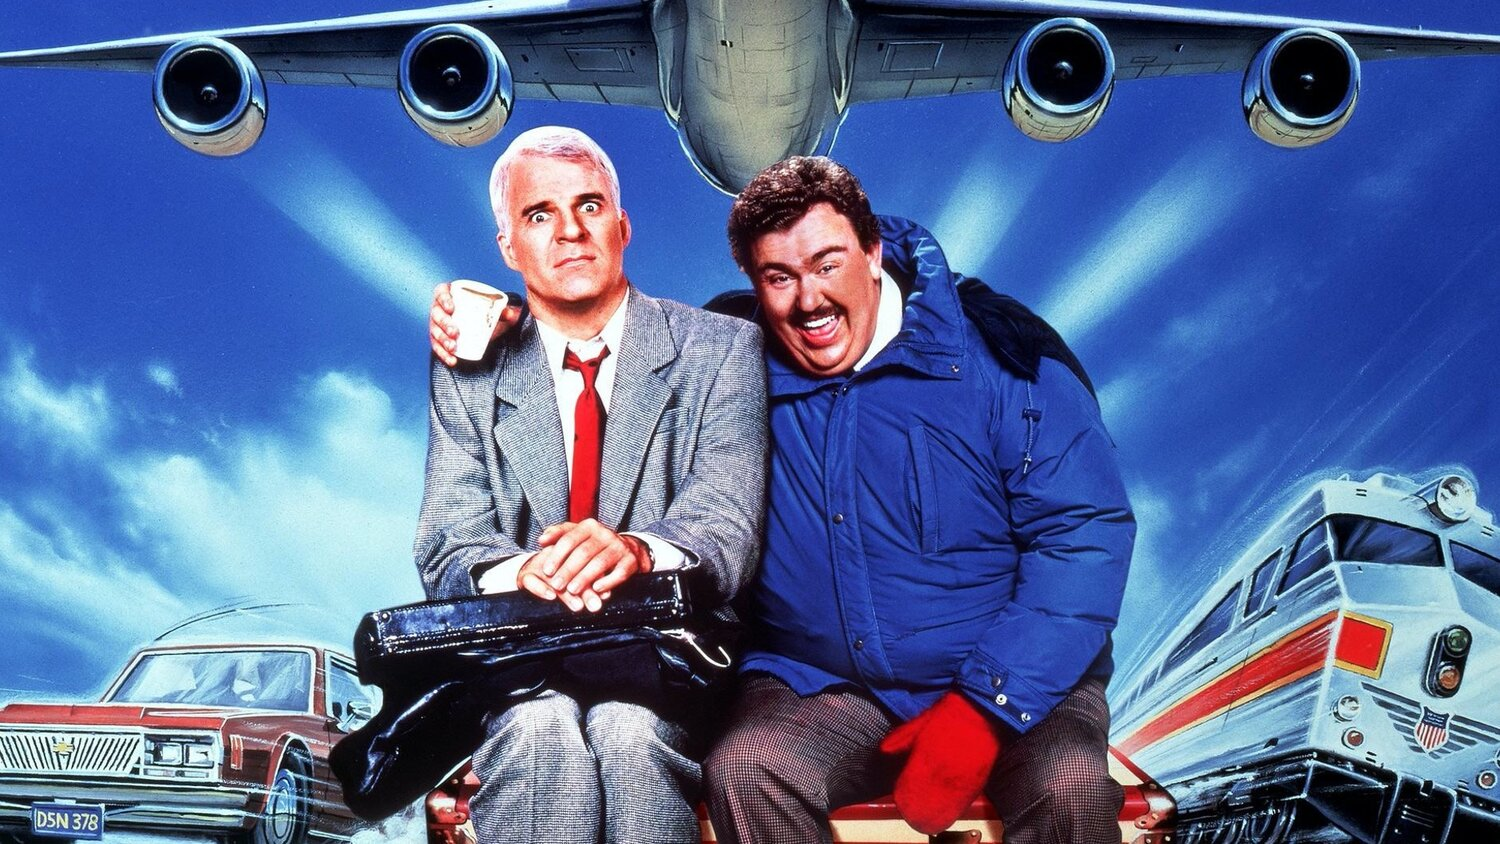 Will Smith and Kevin Hart To Star in PLANES, TRAINS, & AUTOMOBILES Remake